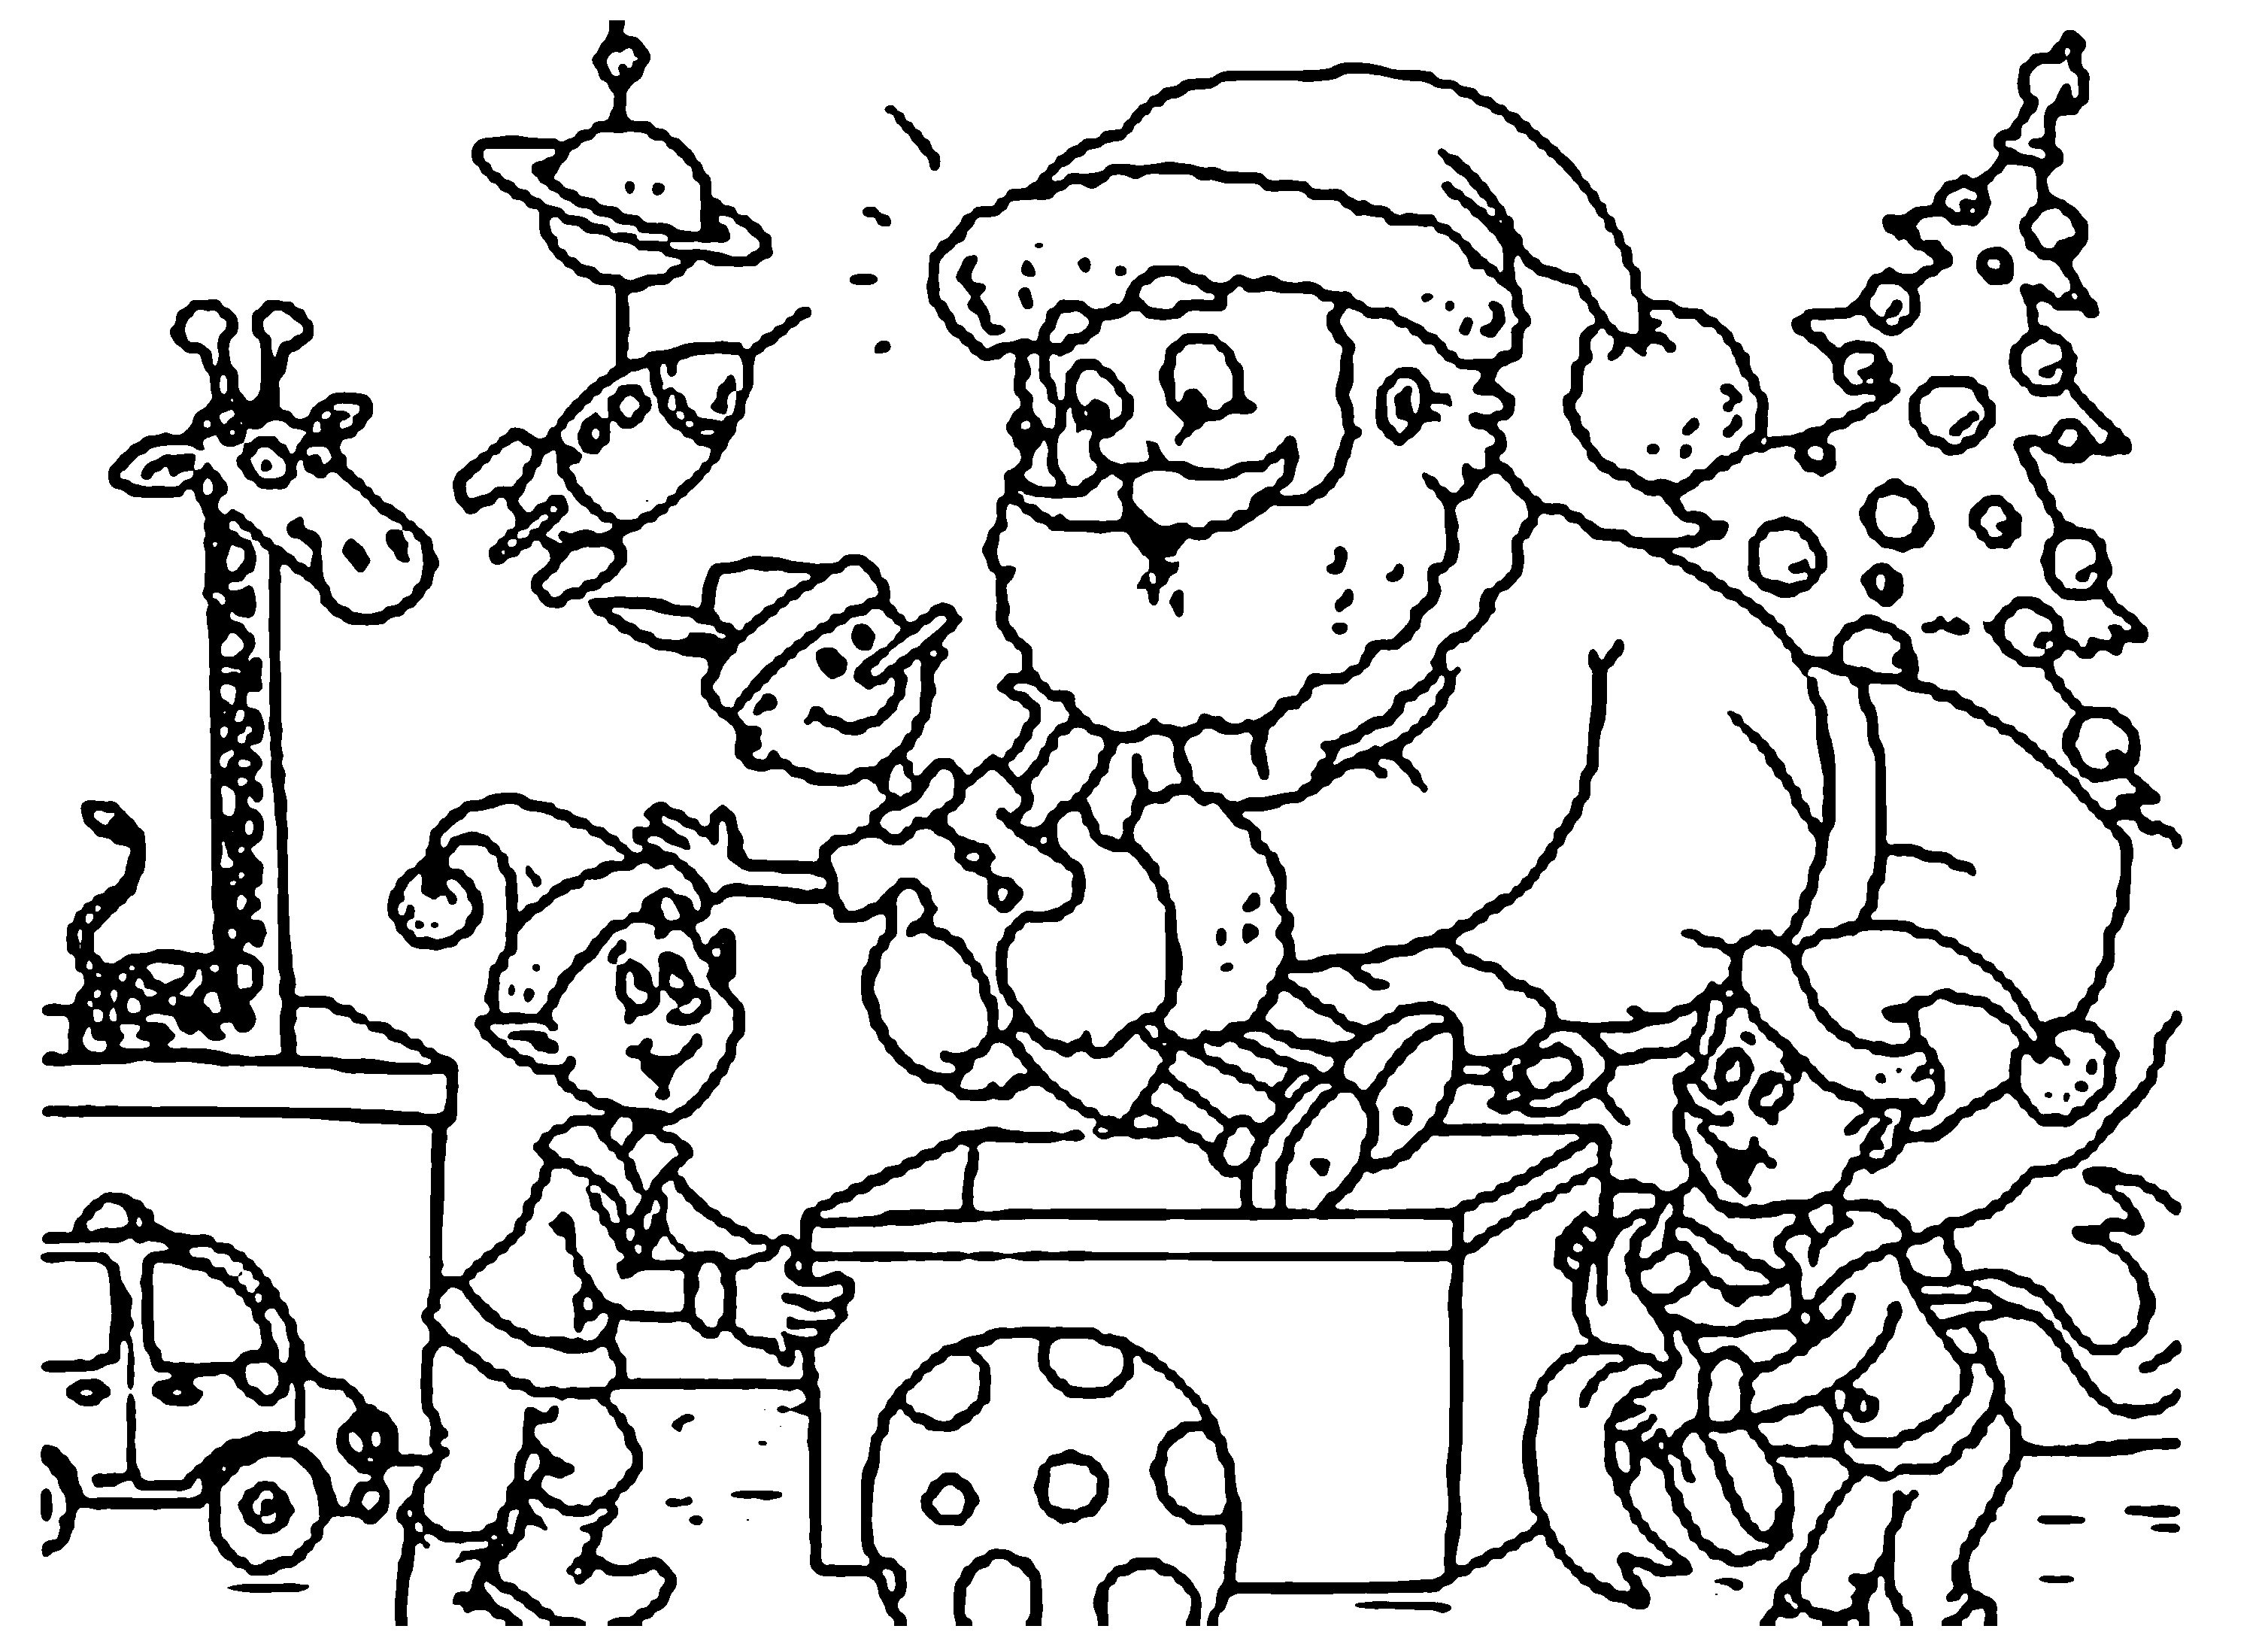 3016x2182 Santa And Sleigh Coloring Pages For Kids Gulfmik Free